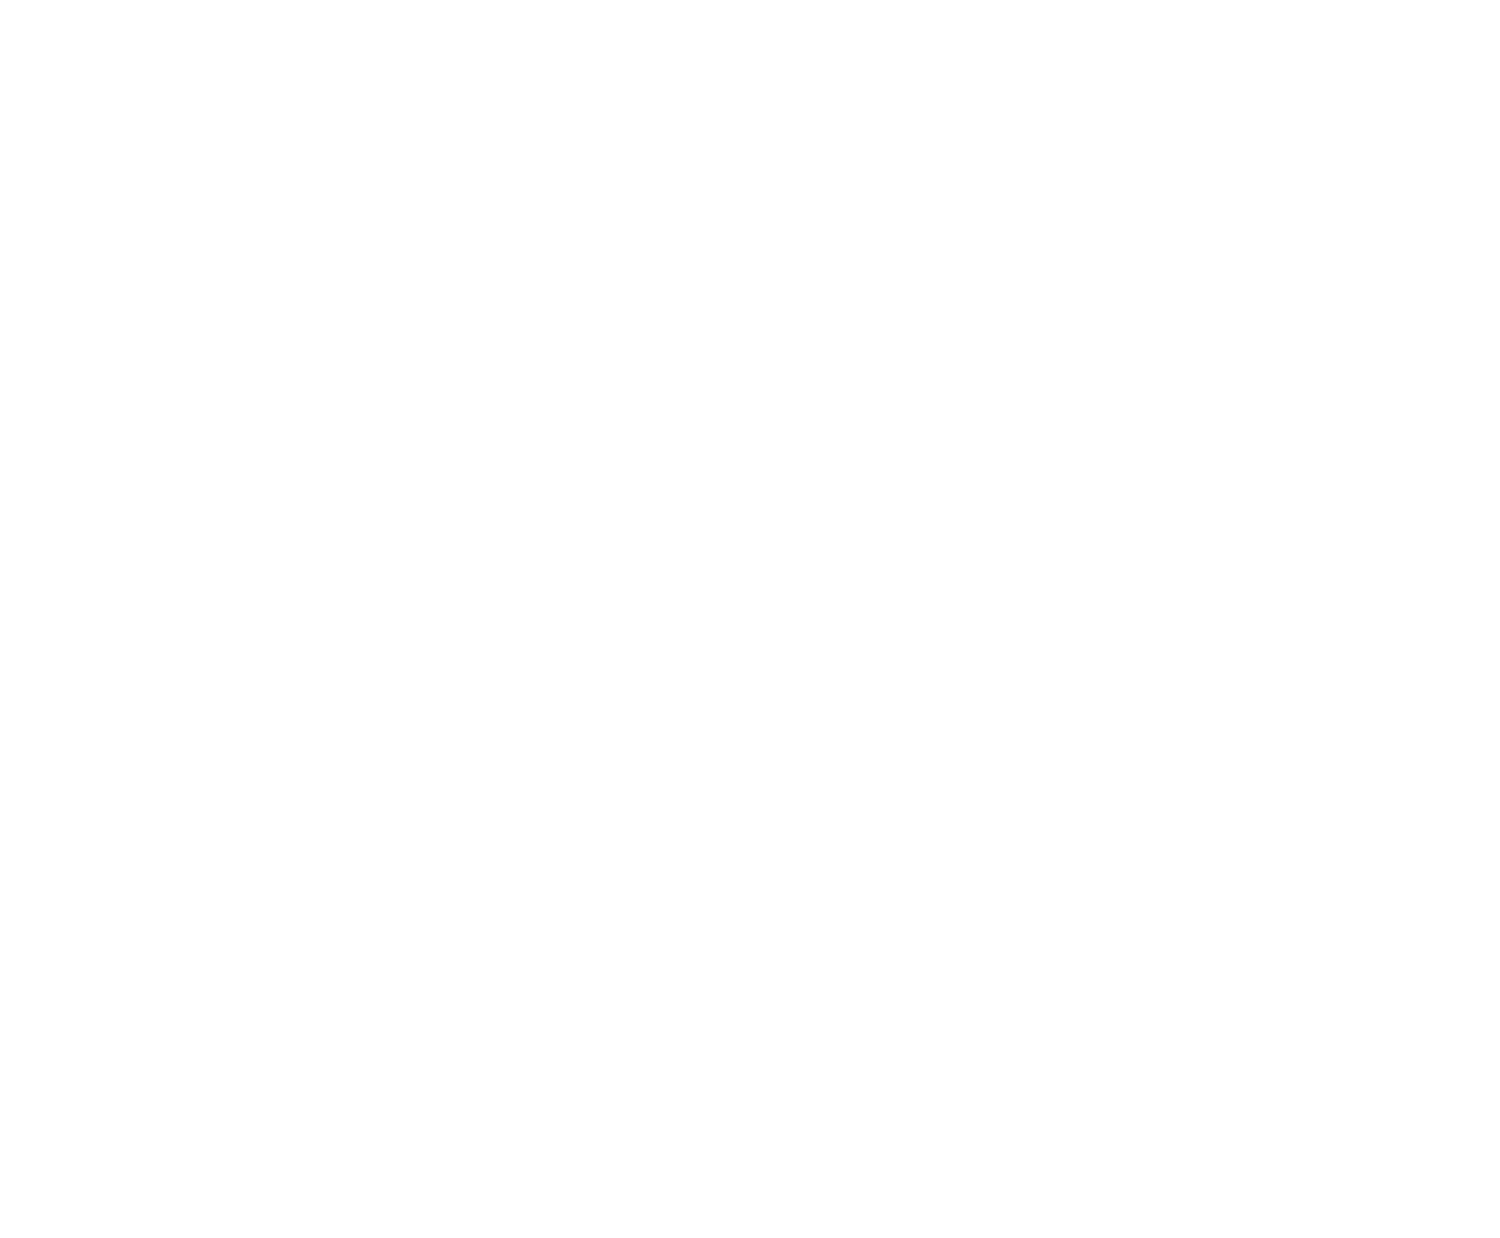 ELM Events & Design